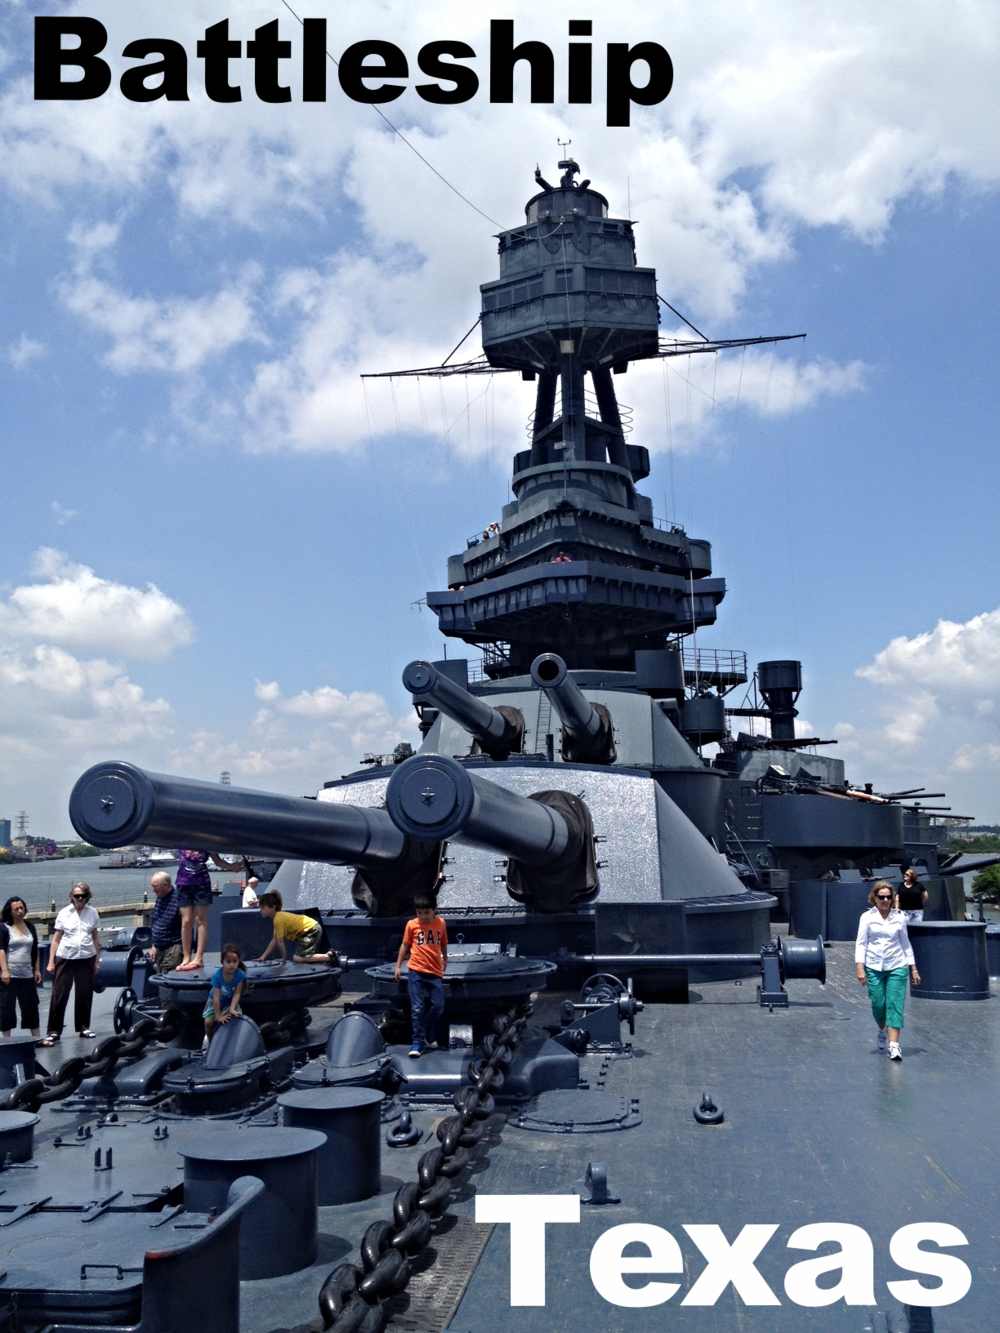 What A C Brand Does Battleship Texas Use